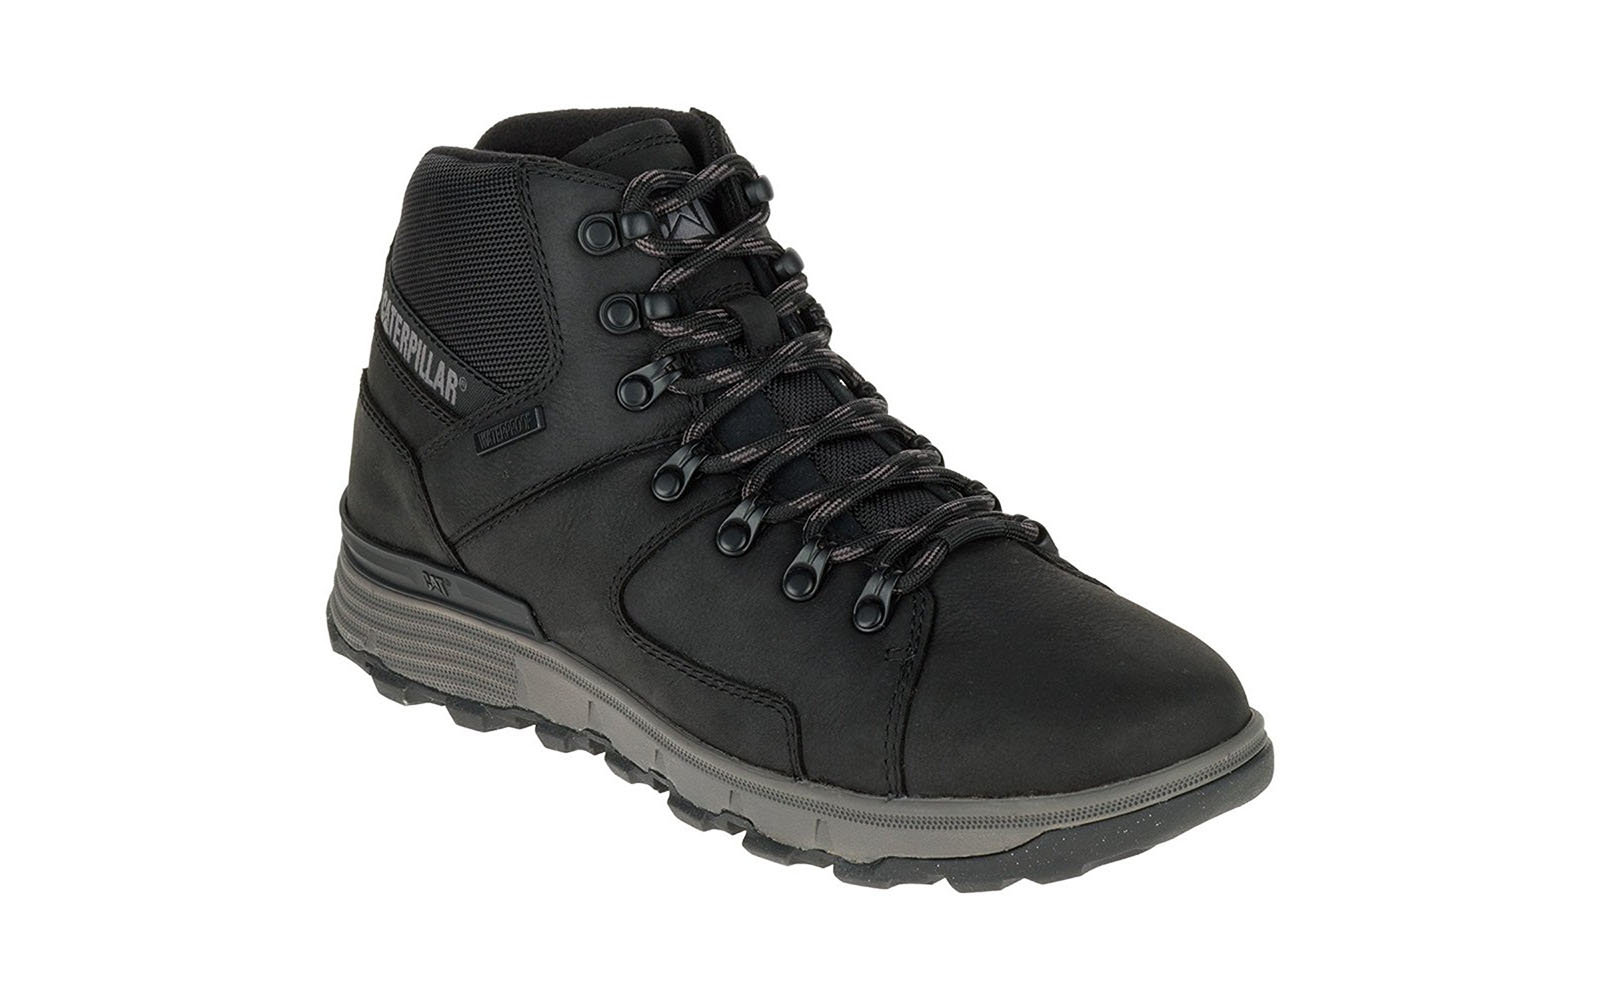 Caterpillar Men's Stiction Hiker Ice+ WP Leather Work Boots